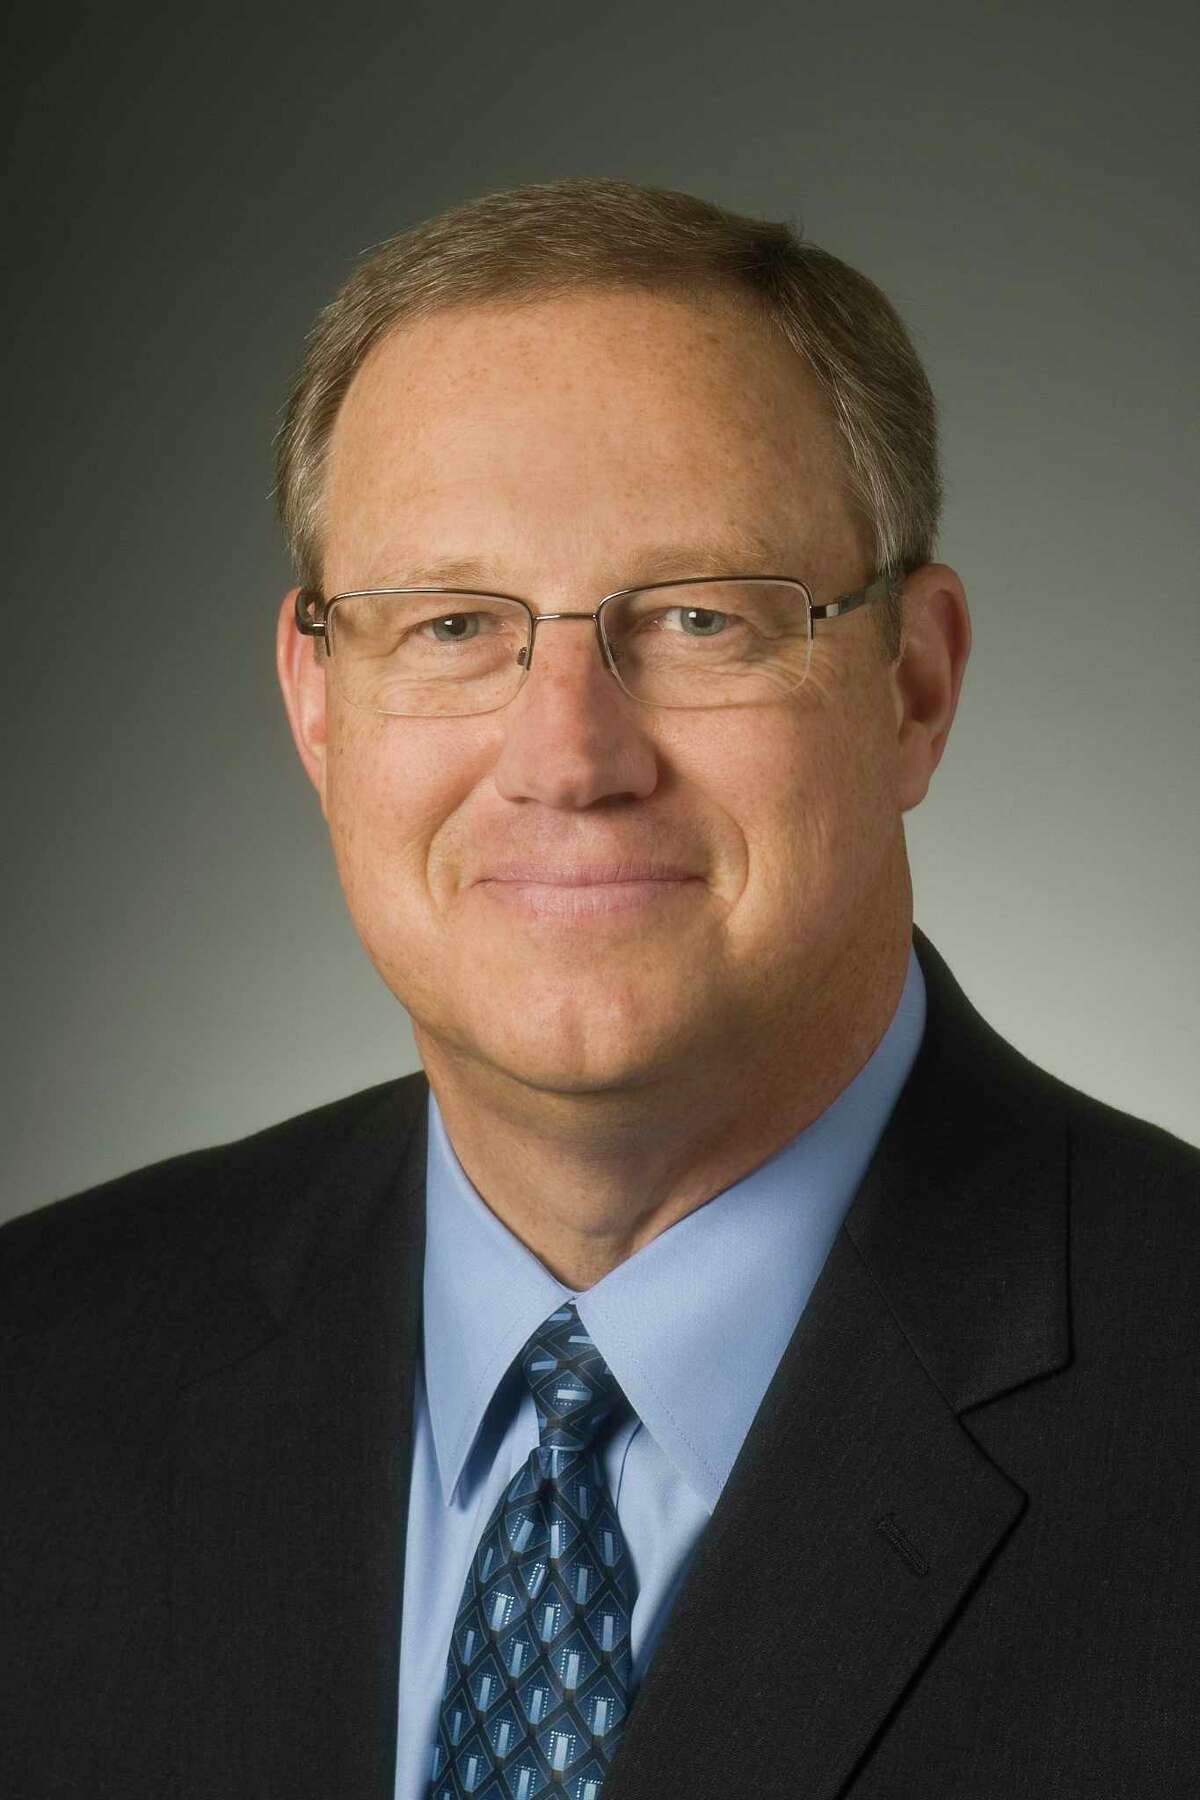 Greg Garland, chairman and CEO of Phillips 66.